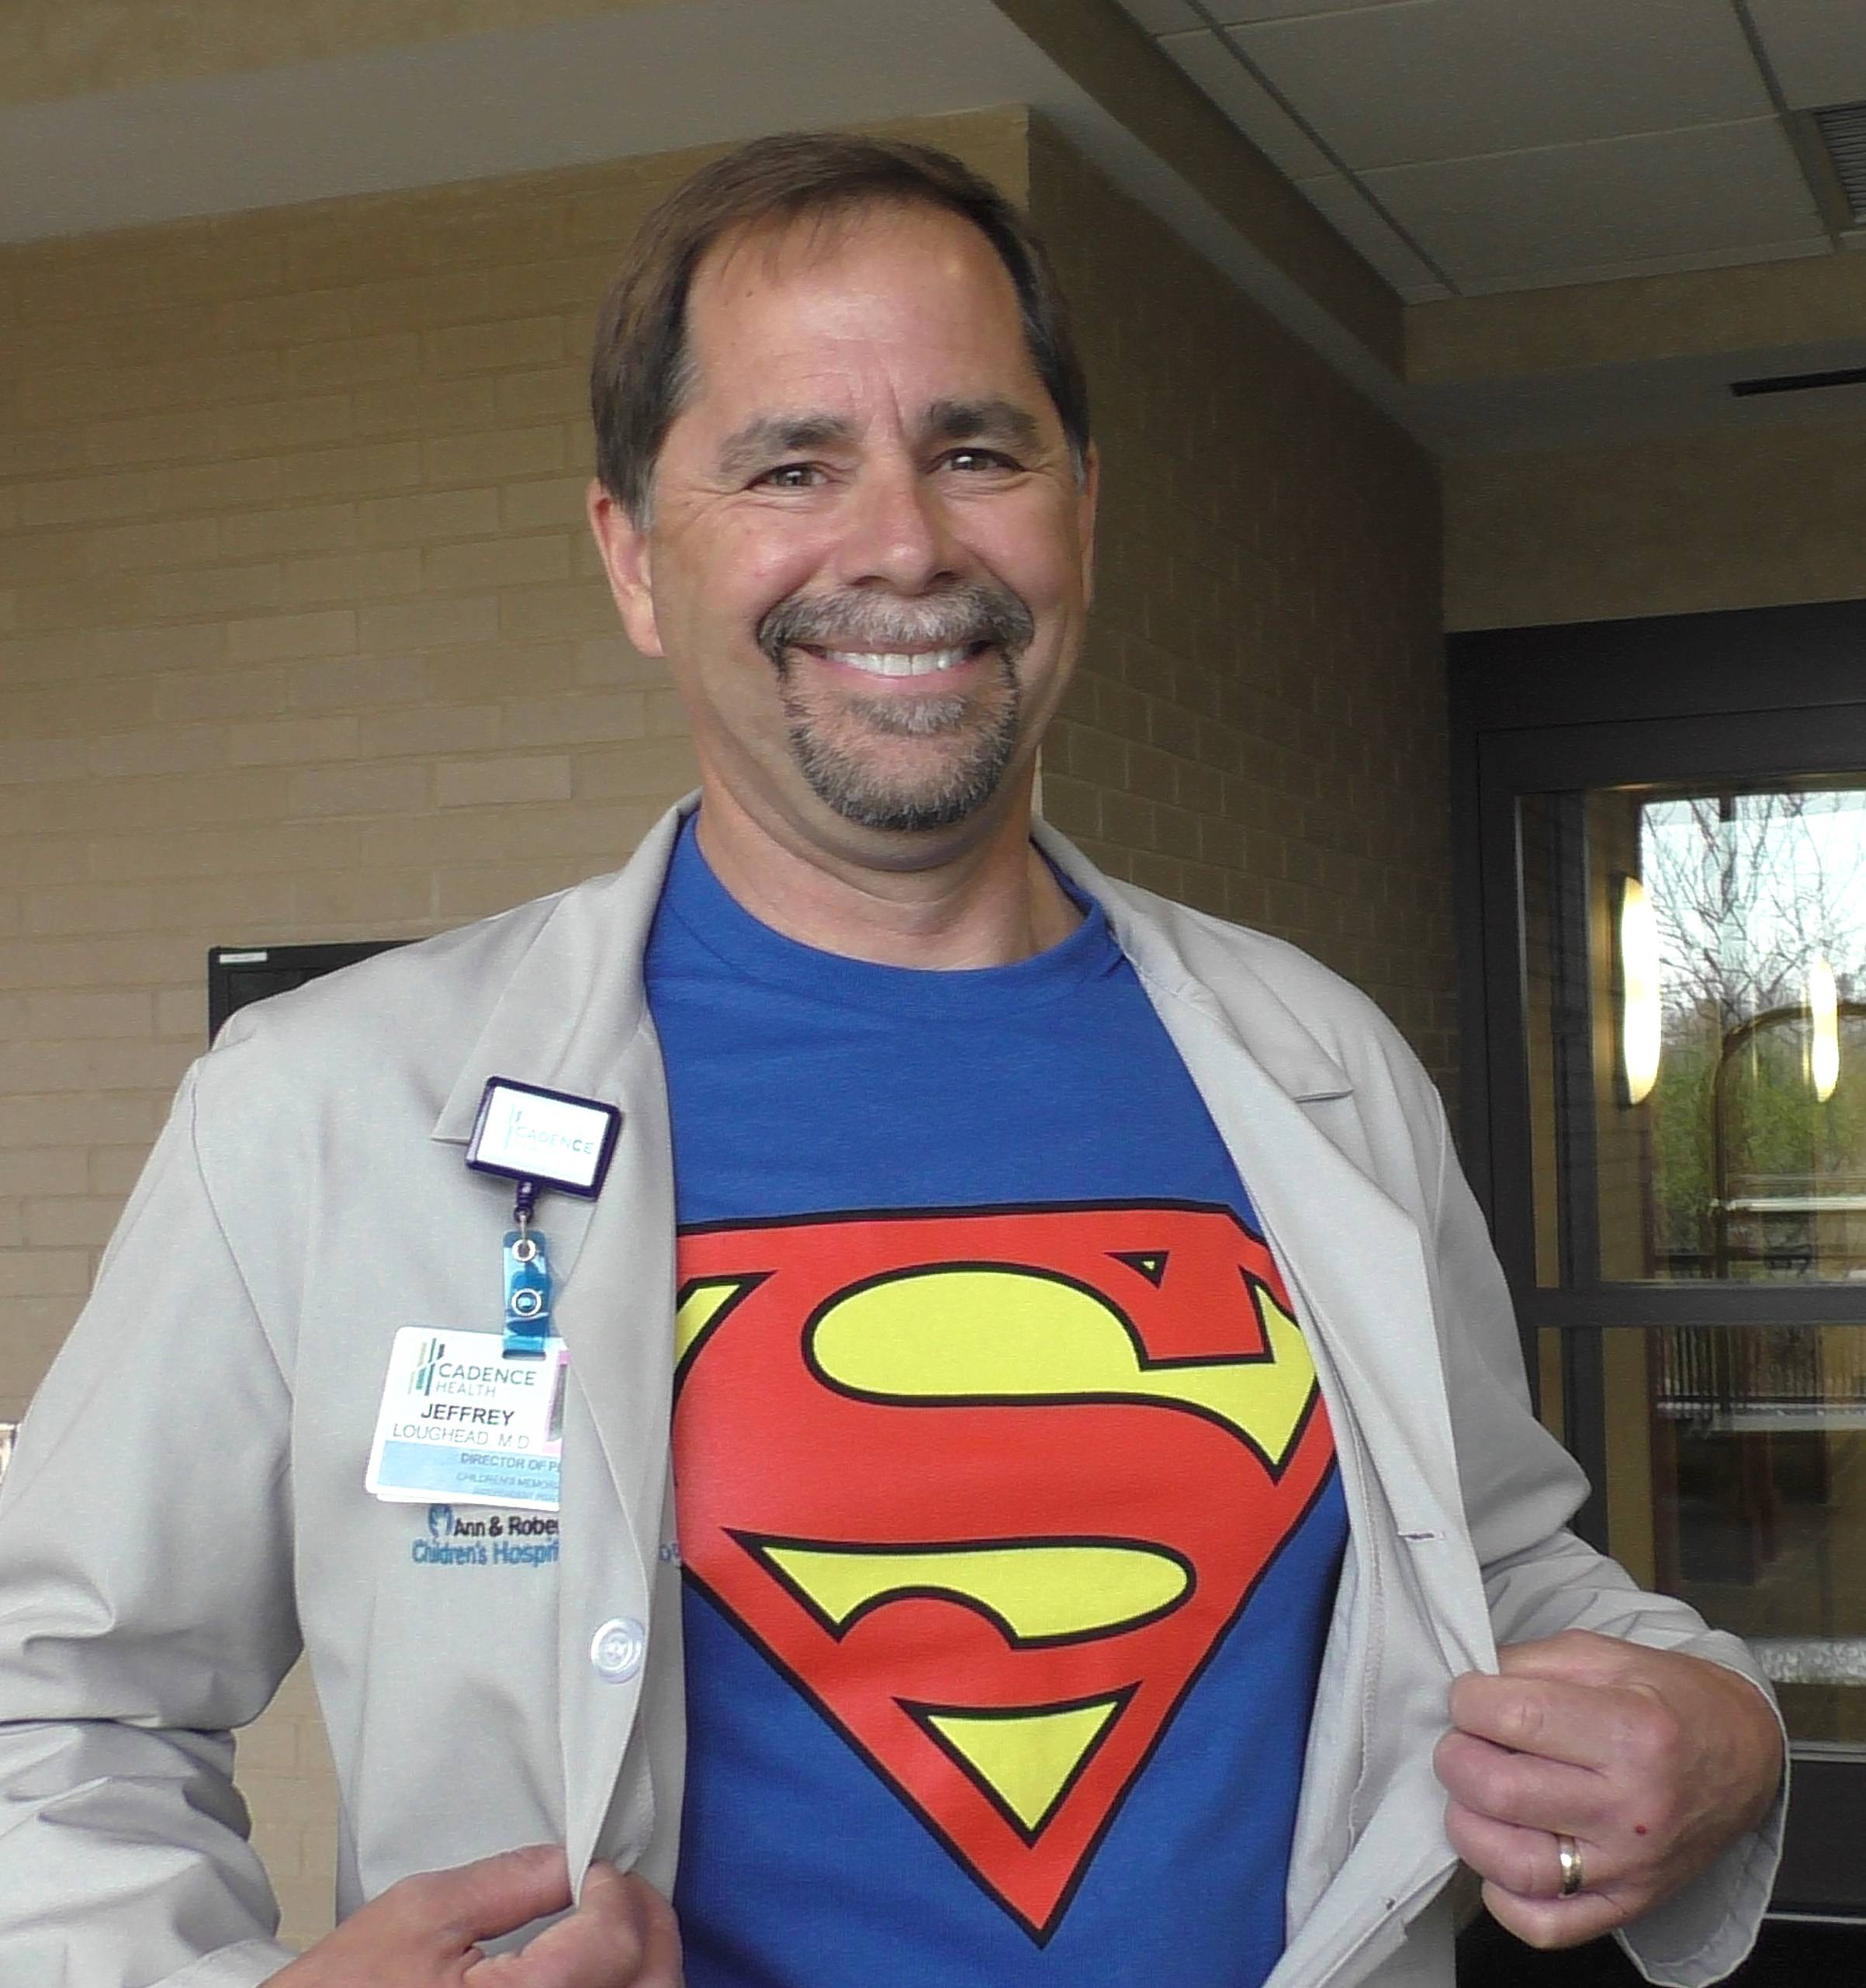 Dr. Jeffrey Loughead, neonatologist site leader of Lurie Children's at Cadence Health Pediatric Program, joined in on the fun for National Superhero Day.